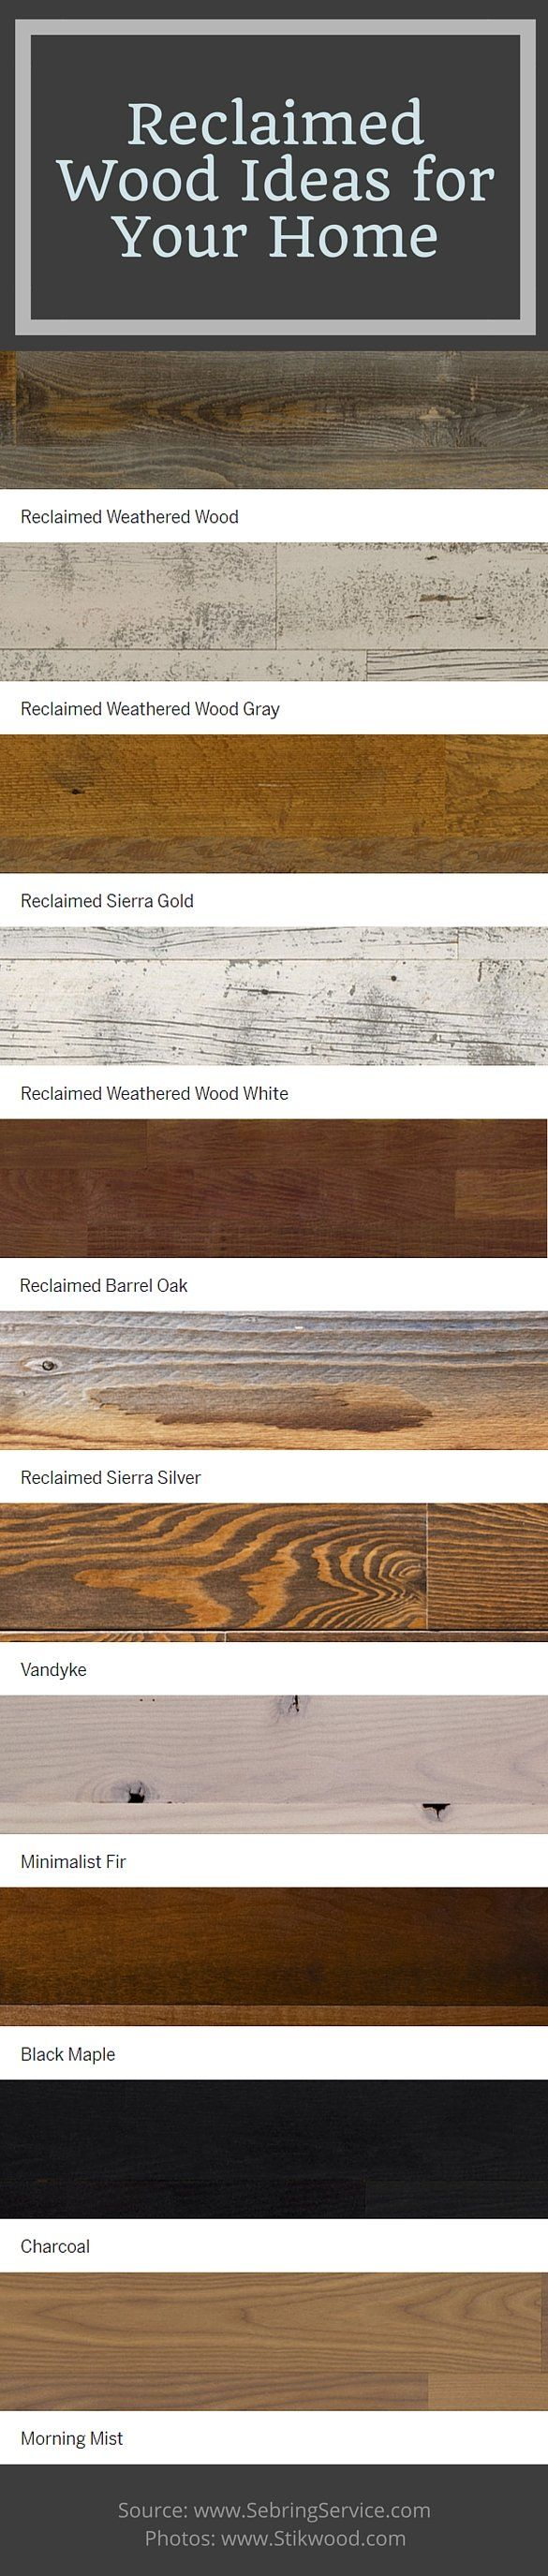 Why You Should Consider Using Reclaimed Wood for Your Homes Interior